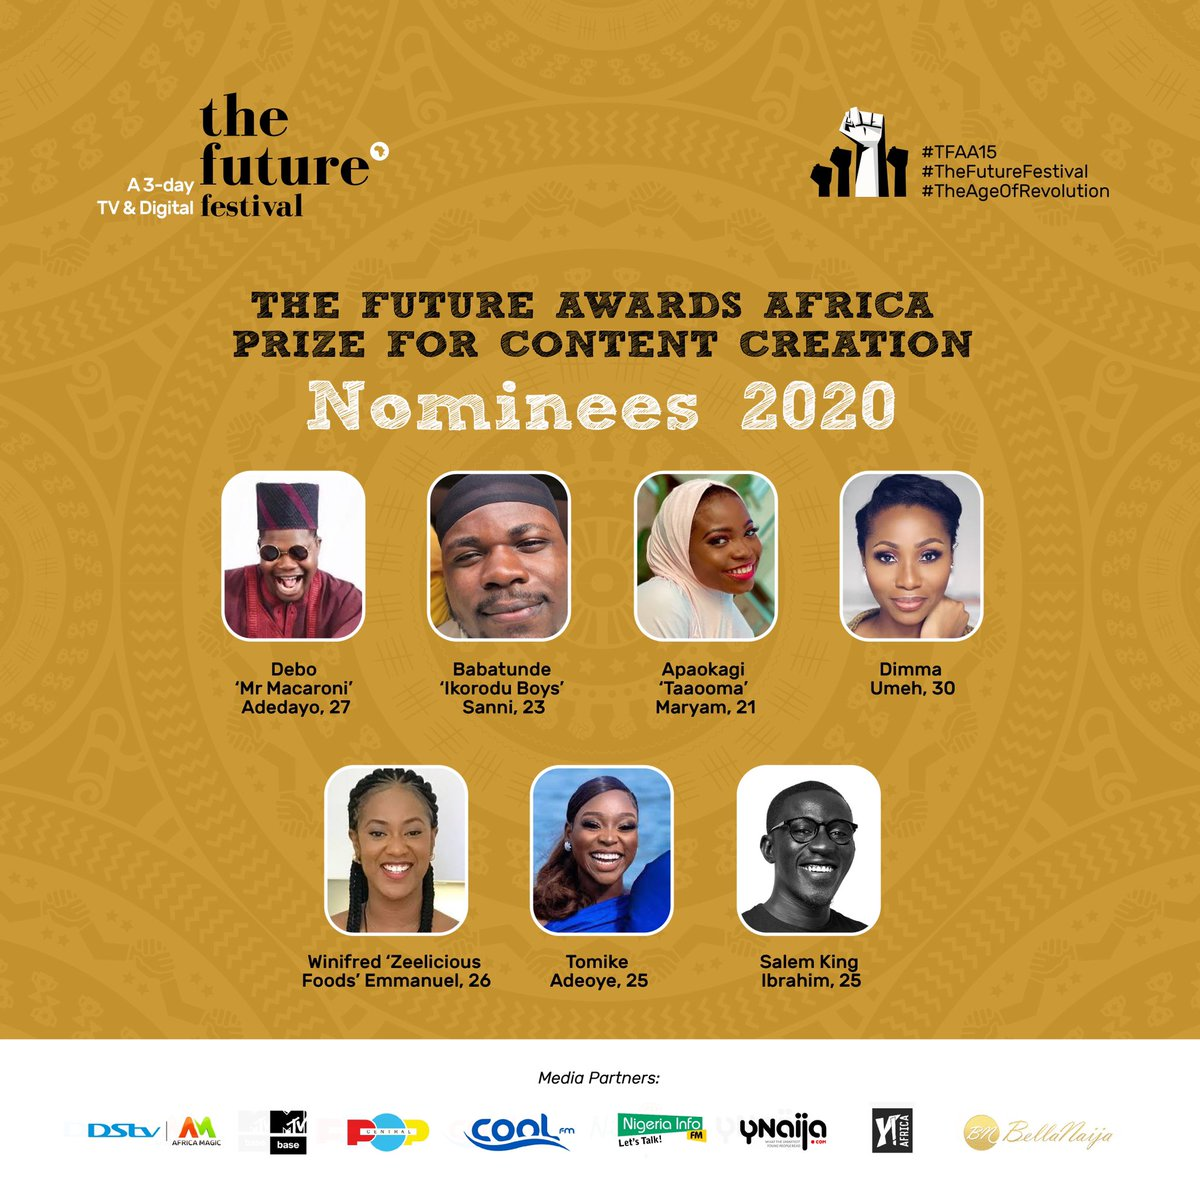 Honored to be nominated alongside these incredible Talents. I am humbled by the fact that we have millions of Nigerian Youths who can achieve greater heights if our environment is safer and enabling. This is why we clamor for a Better Nigeria! ✊🏿 Thank you @TFAAfrica @IamYAfrica